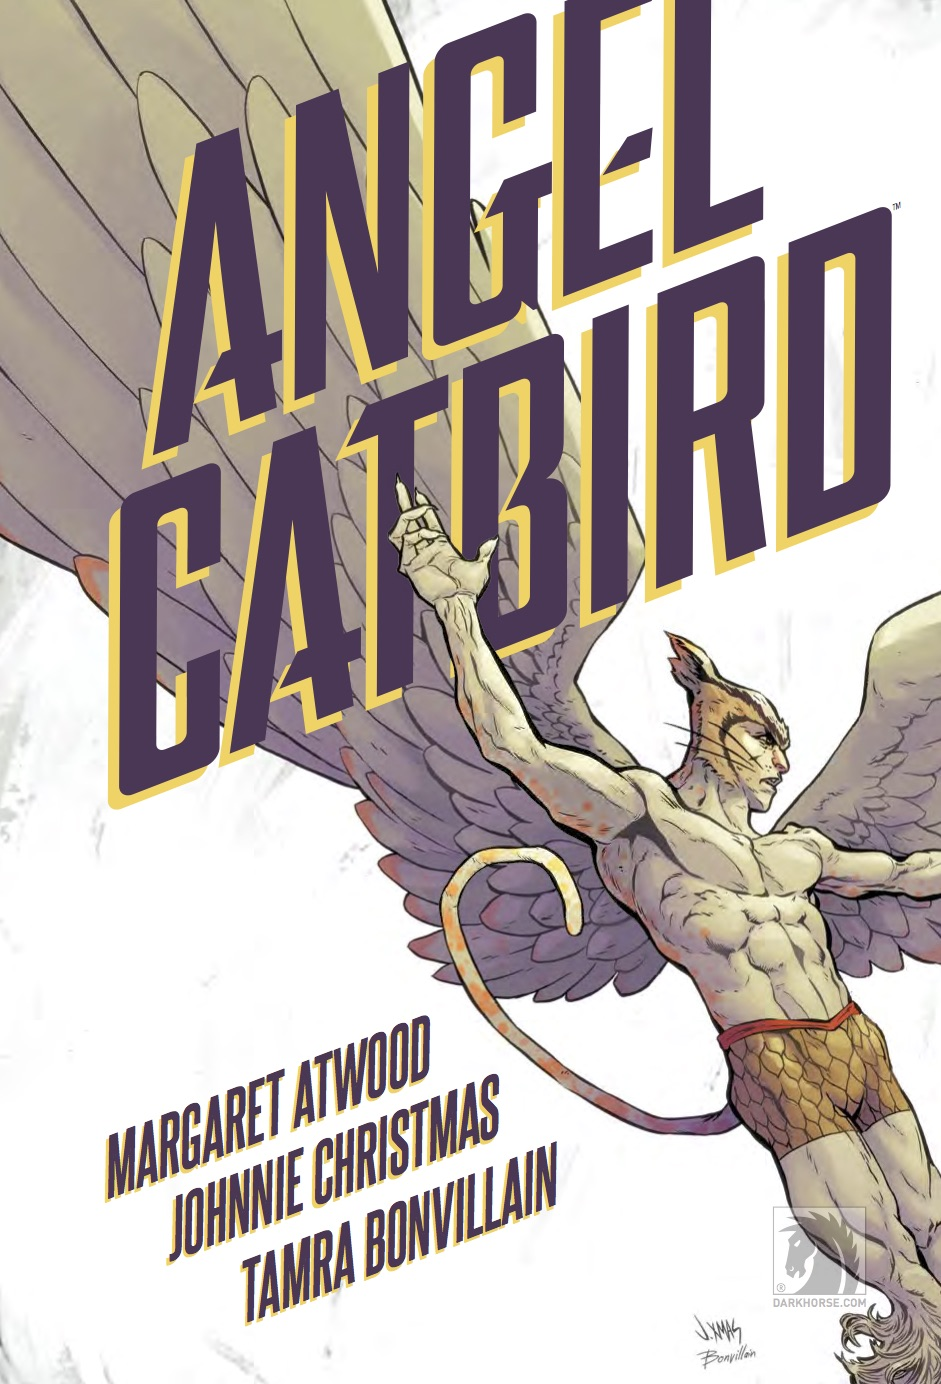 Margaret Atwood's graphic novel about a bird-cat-man superhero is a real trip